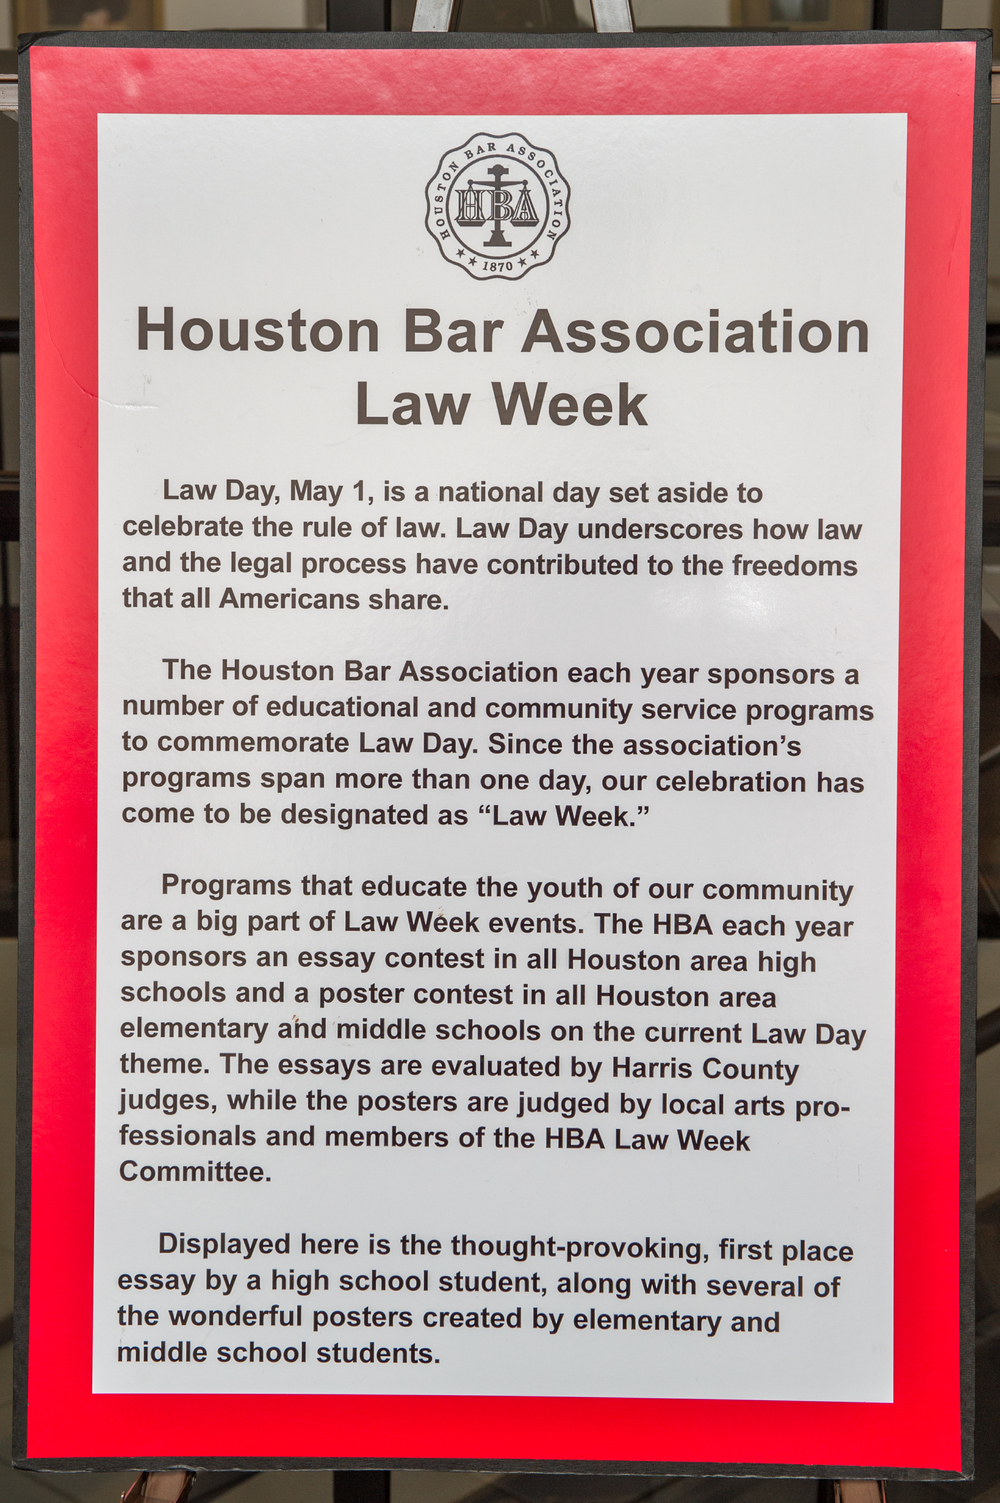 digital exhibit magna carta harris county law library the houston bar association law week committee regularly plans activities throughout the city to celebrate the law day theme for an entire week